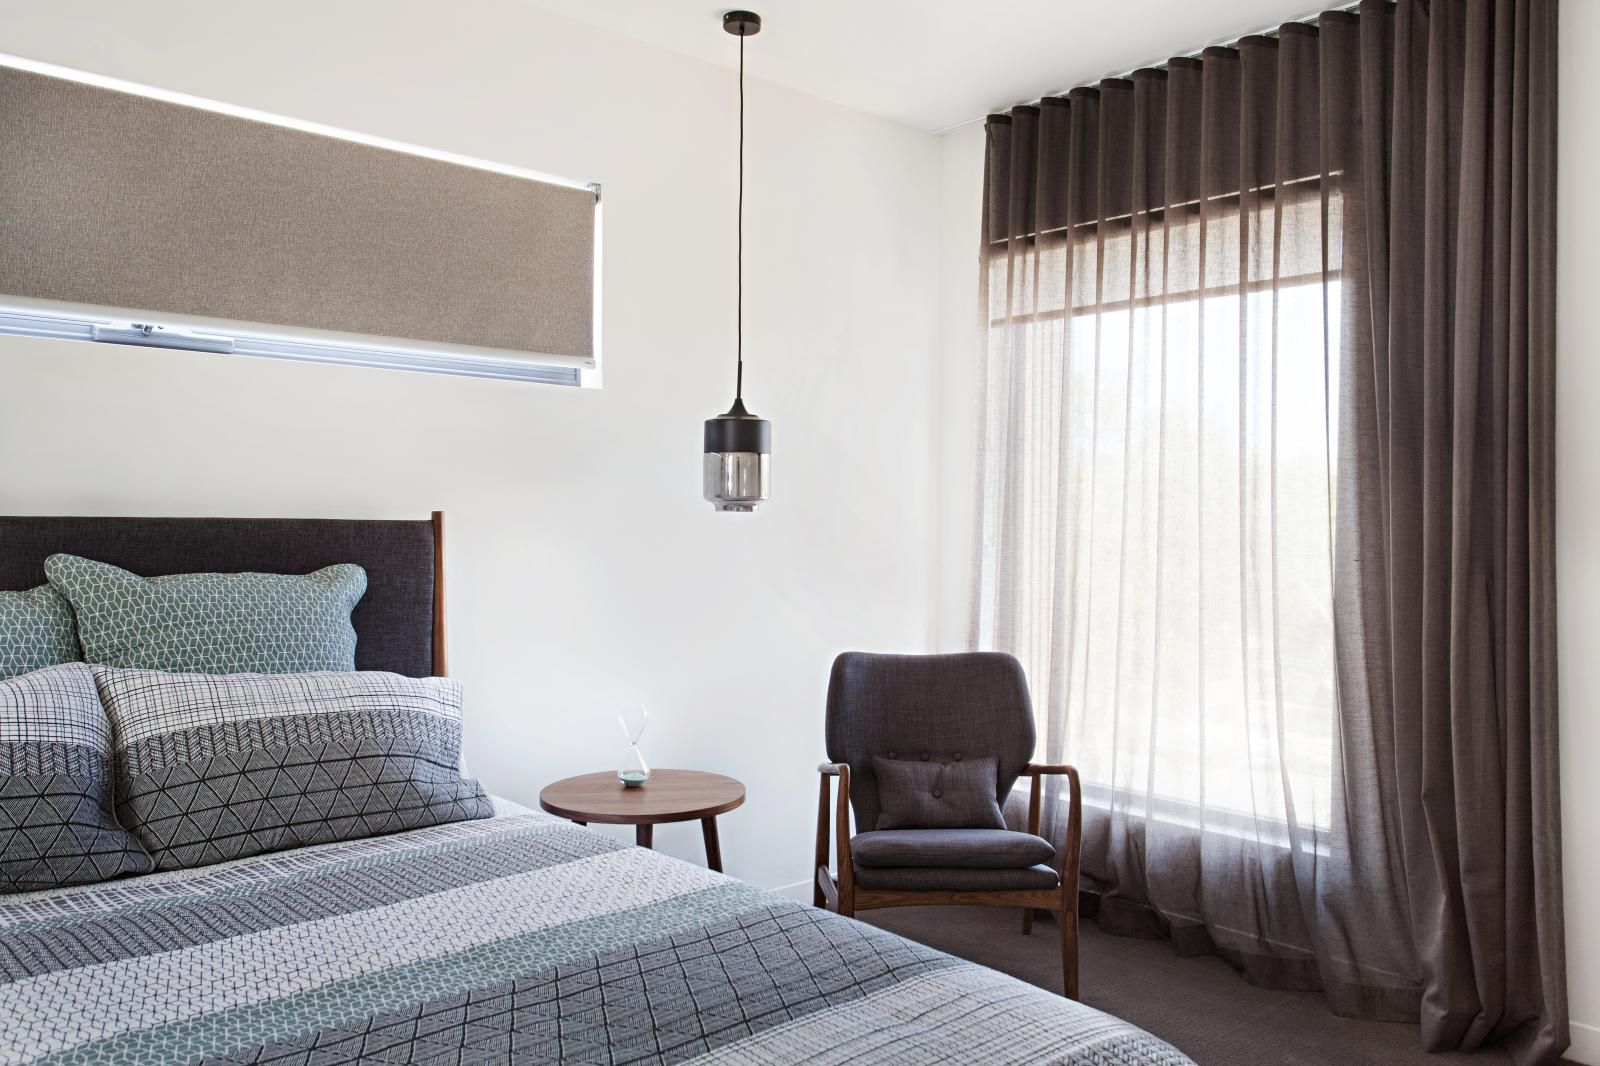 Blinds And Curtains For Bedroom - S fold curtain in sheer cavalier fabric and teak colour coupled with a